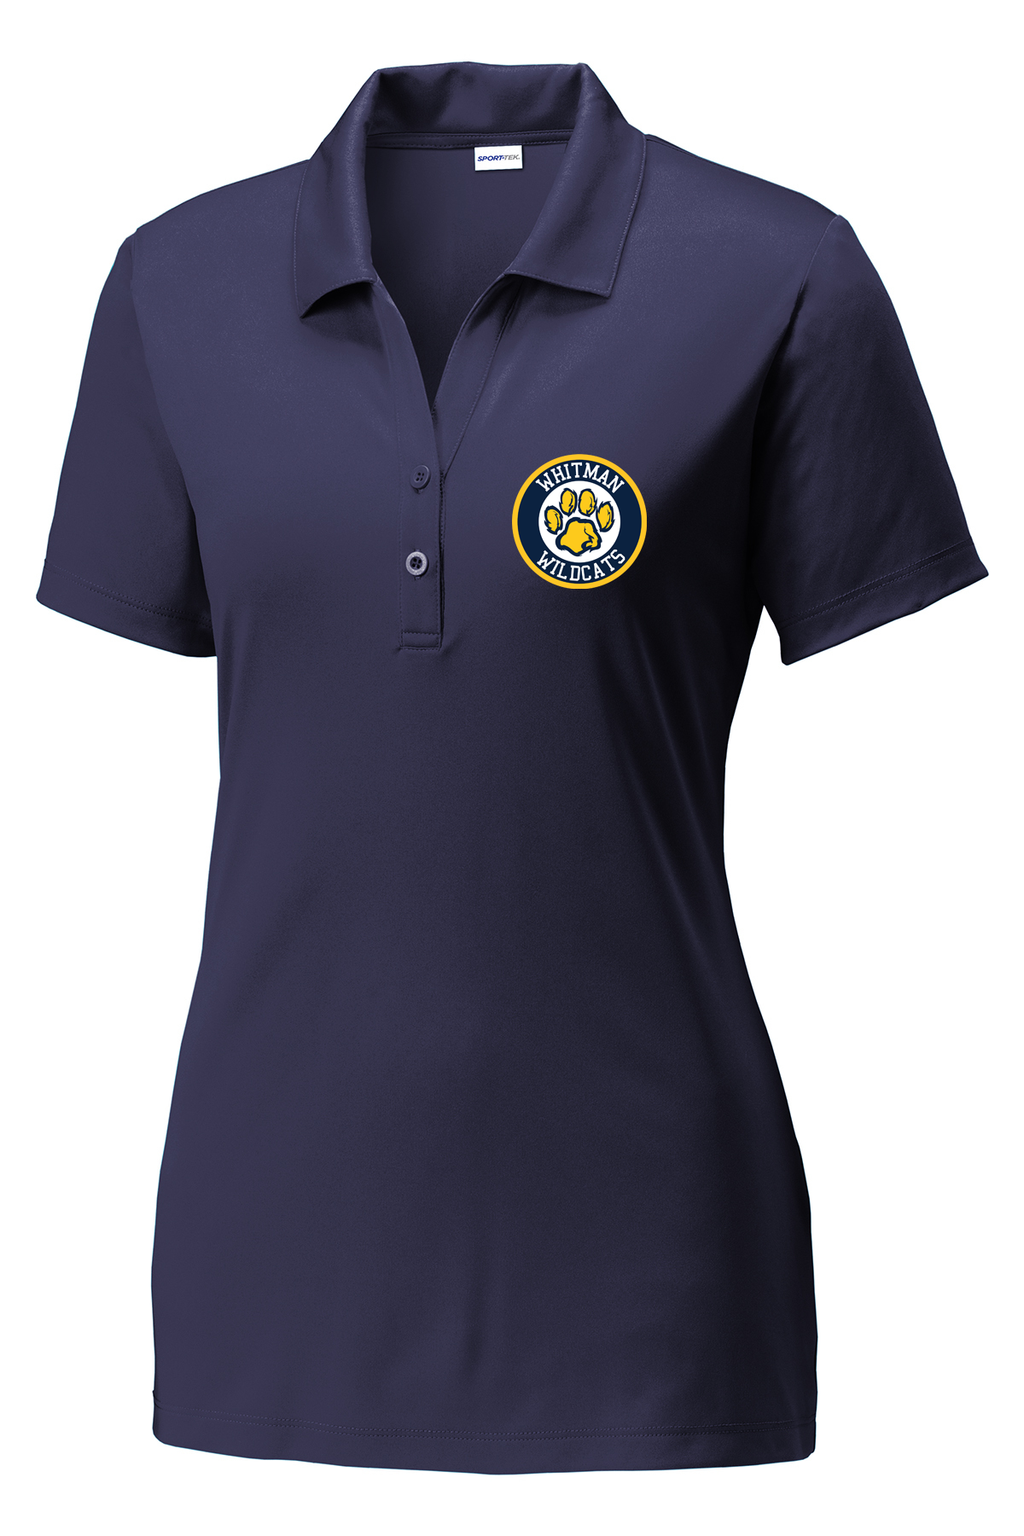 Whitman Wildcats Women's Polo